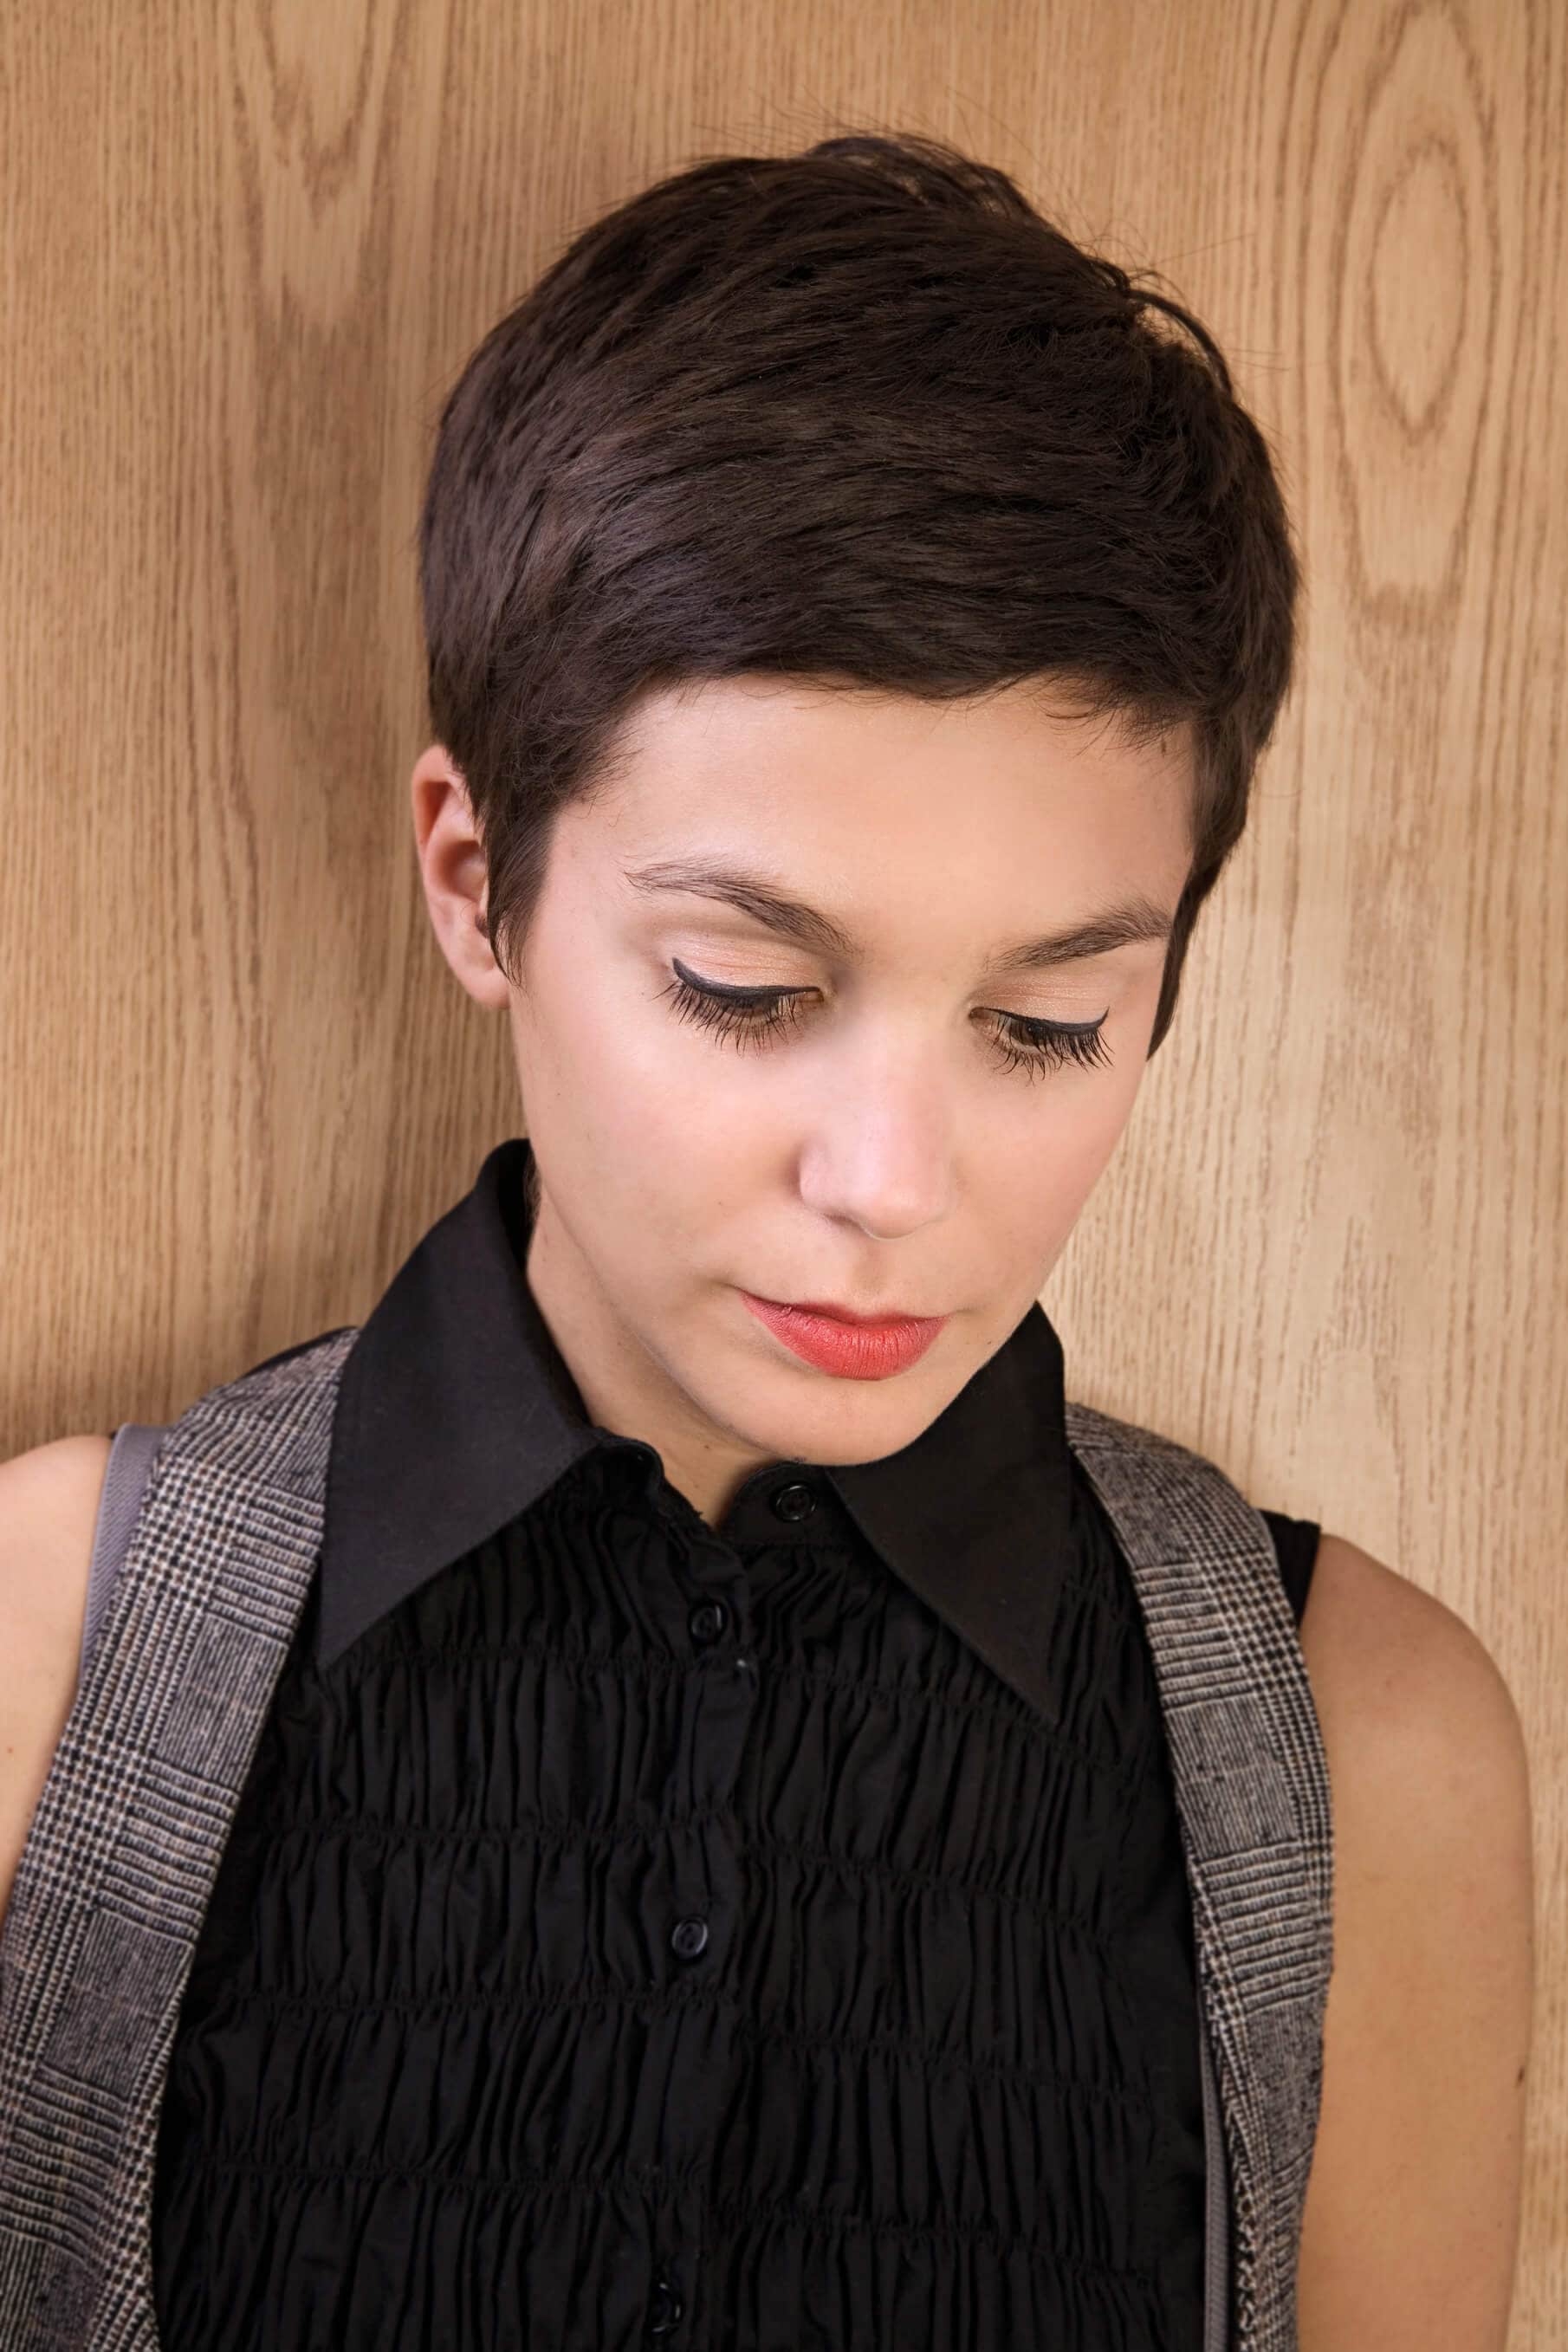 vintage-inspired haircut pixie